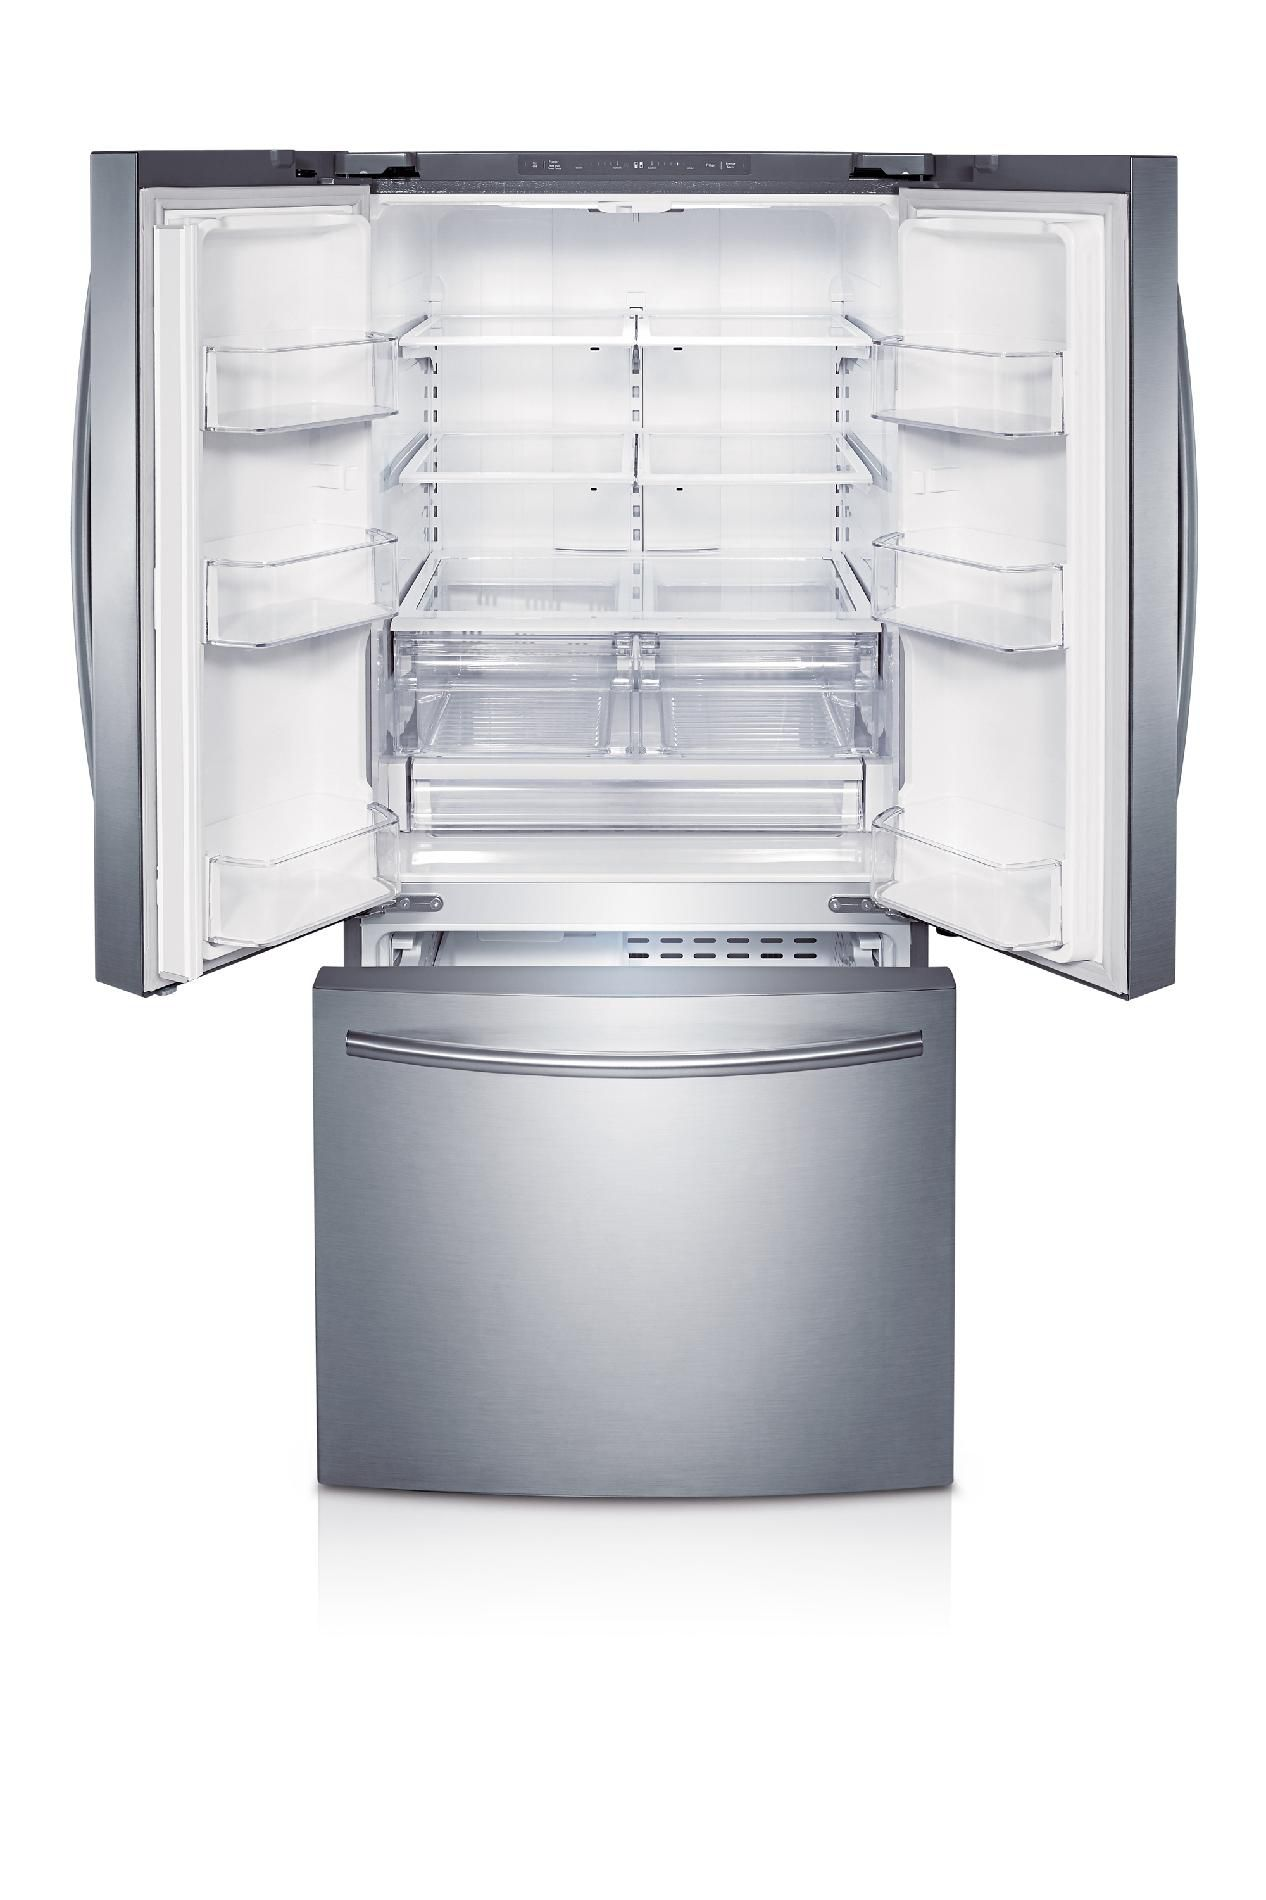 Samsung 22 cu. ft. French Door Refrigerator - Stainless